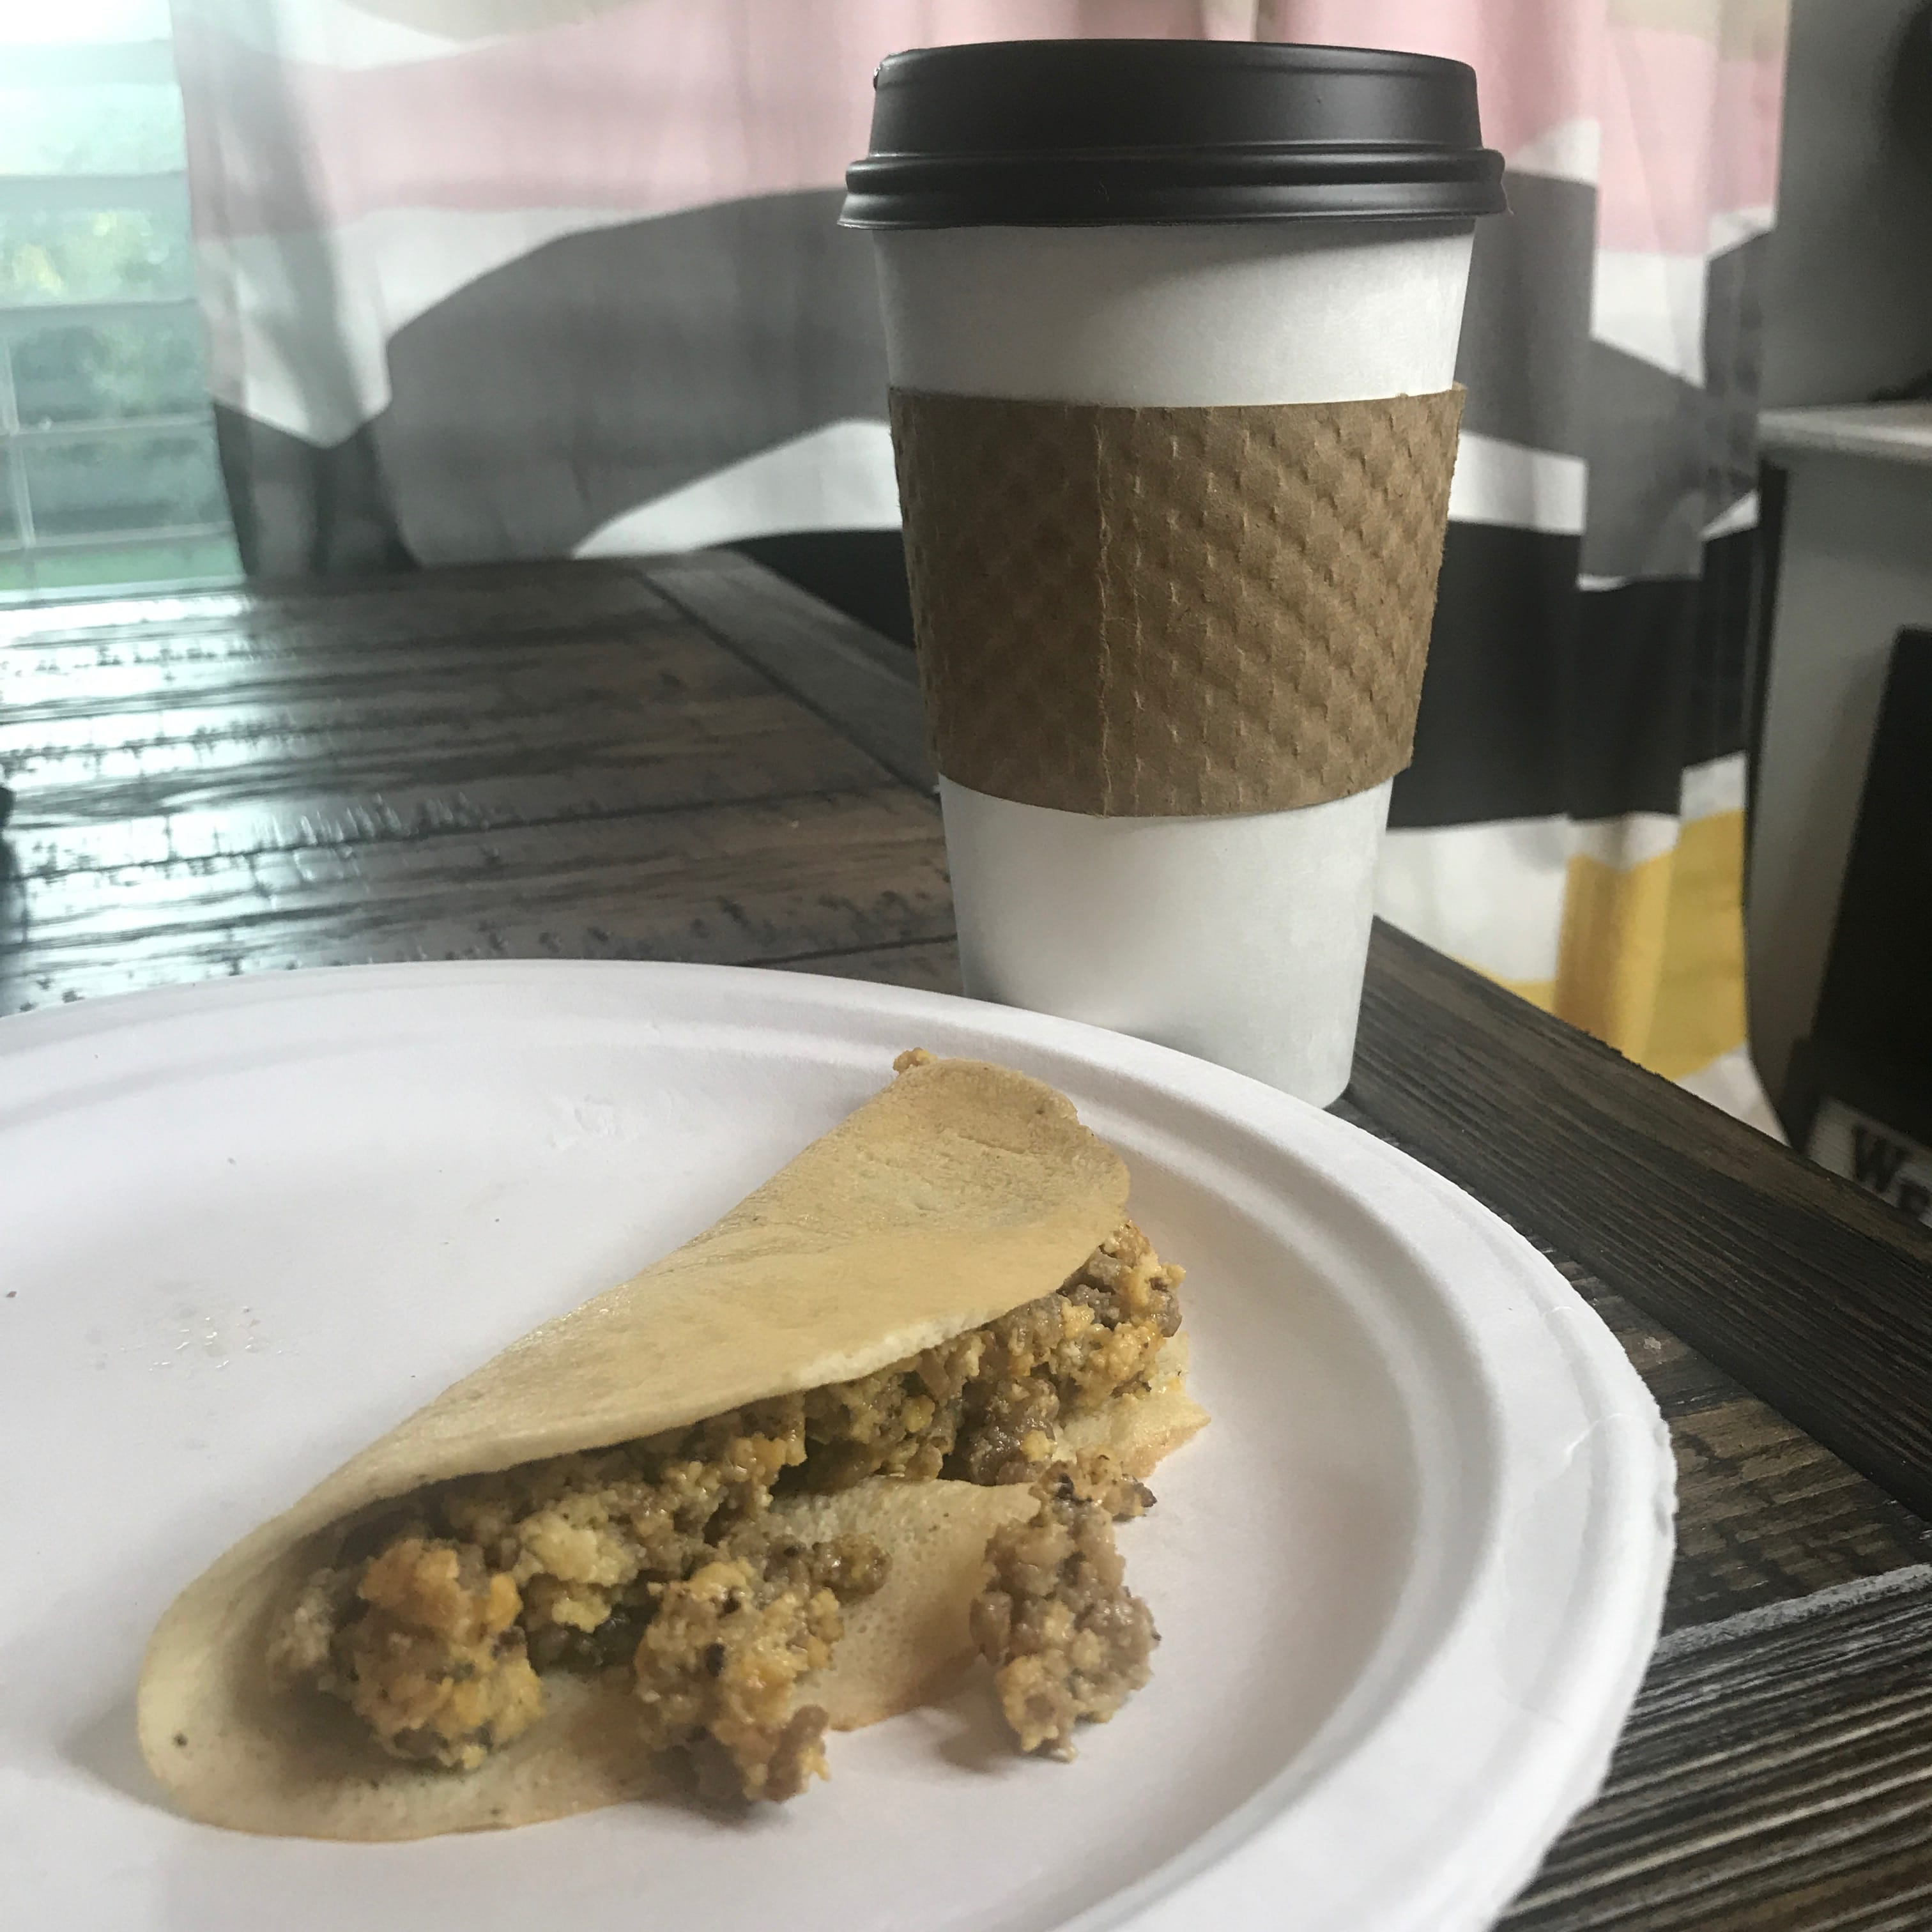 Keto Crepe filled with sausage egg and cheese sitting on a table with coffee